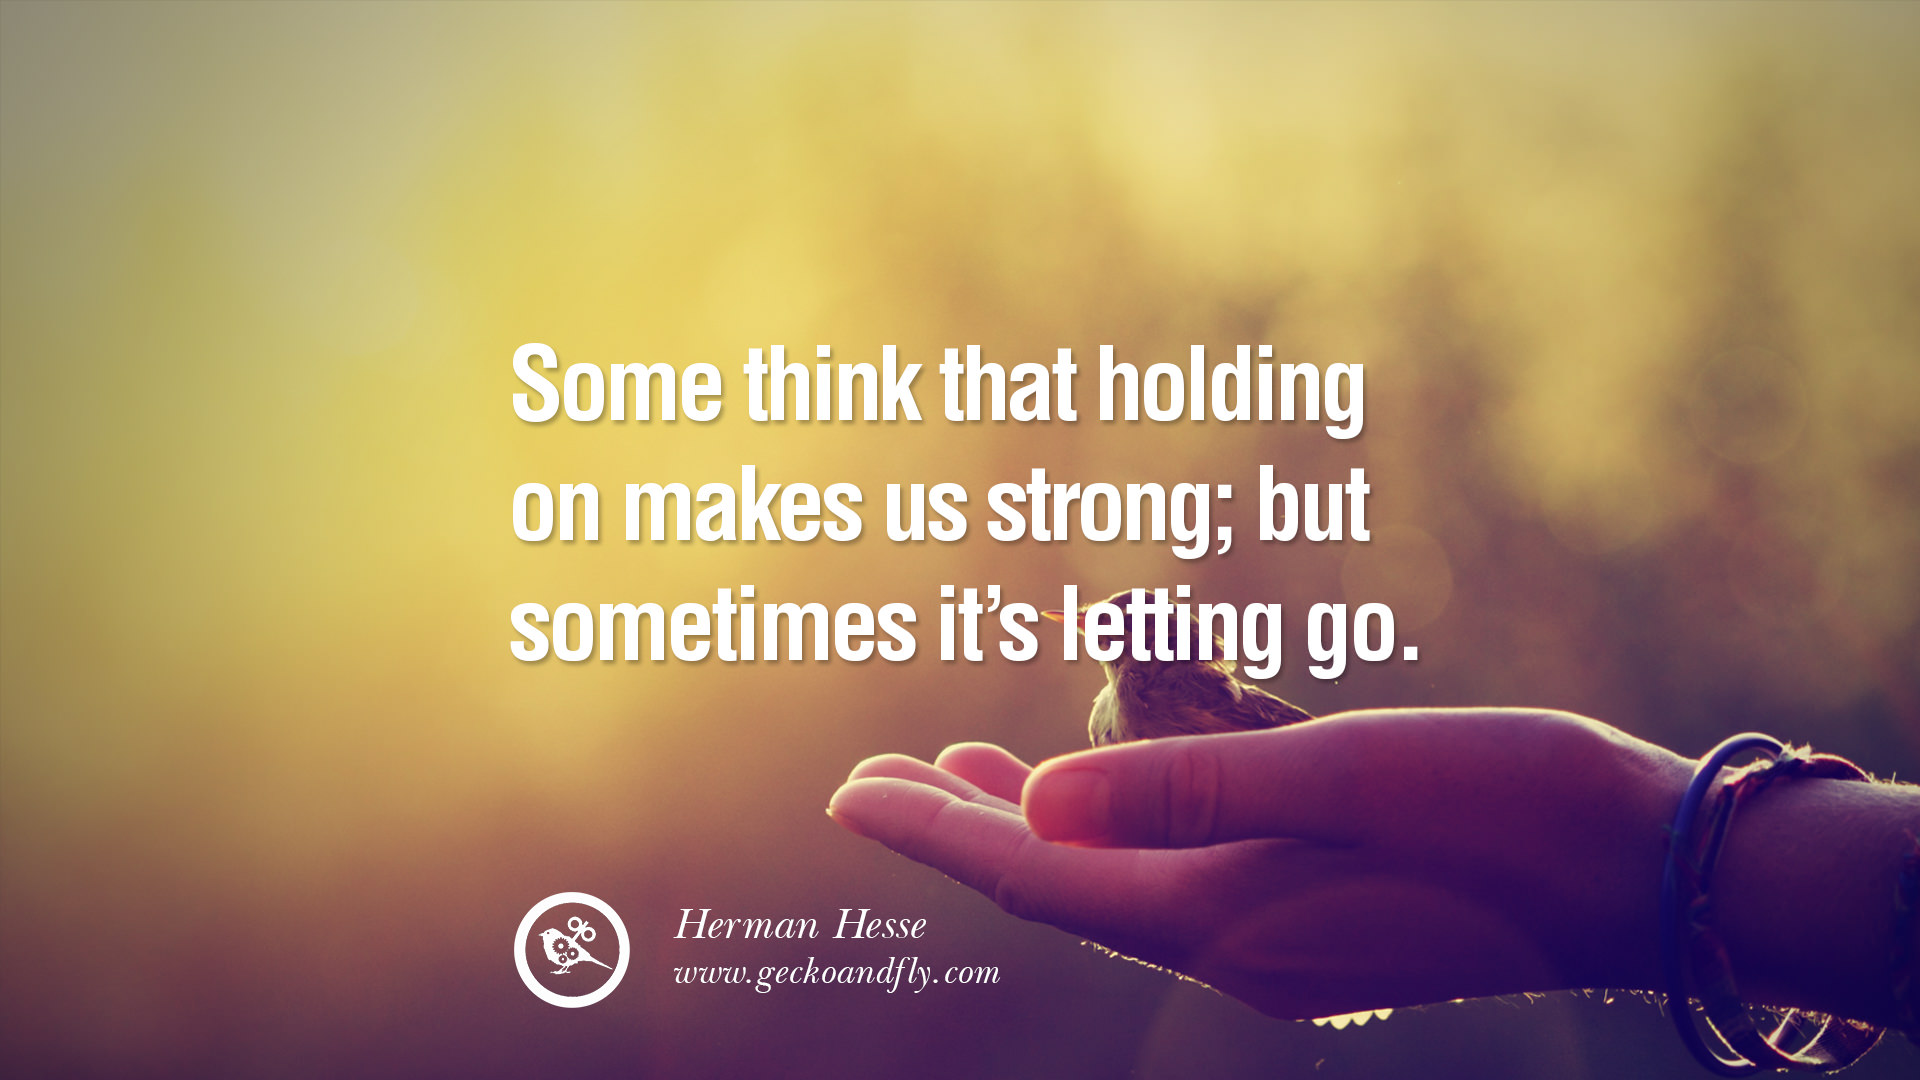 Letting Go Wallpaper Quotes - Loving Is Letting Go Quotes , HD Wallpaper & Backgrounds